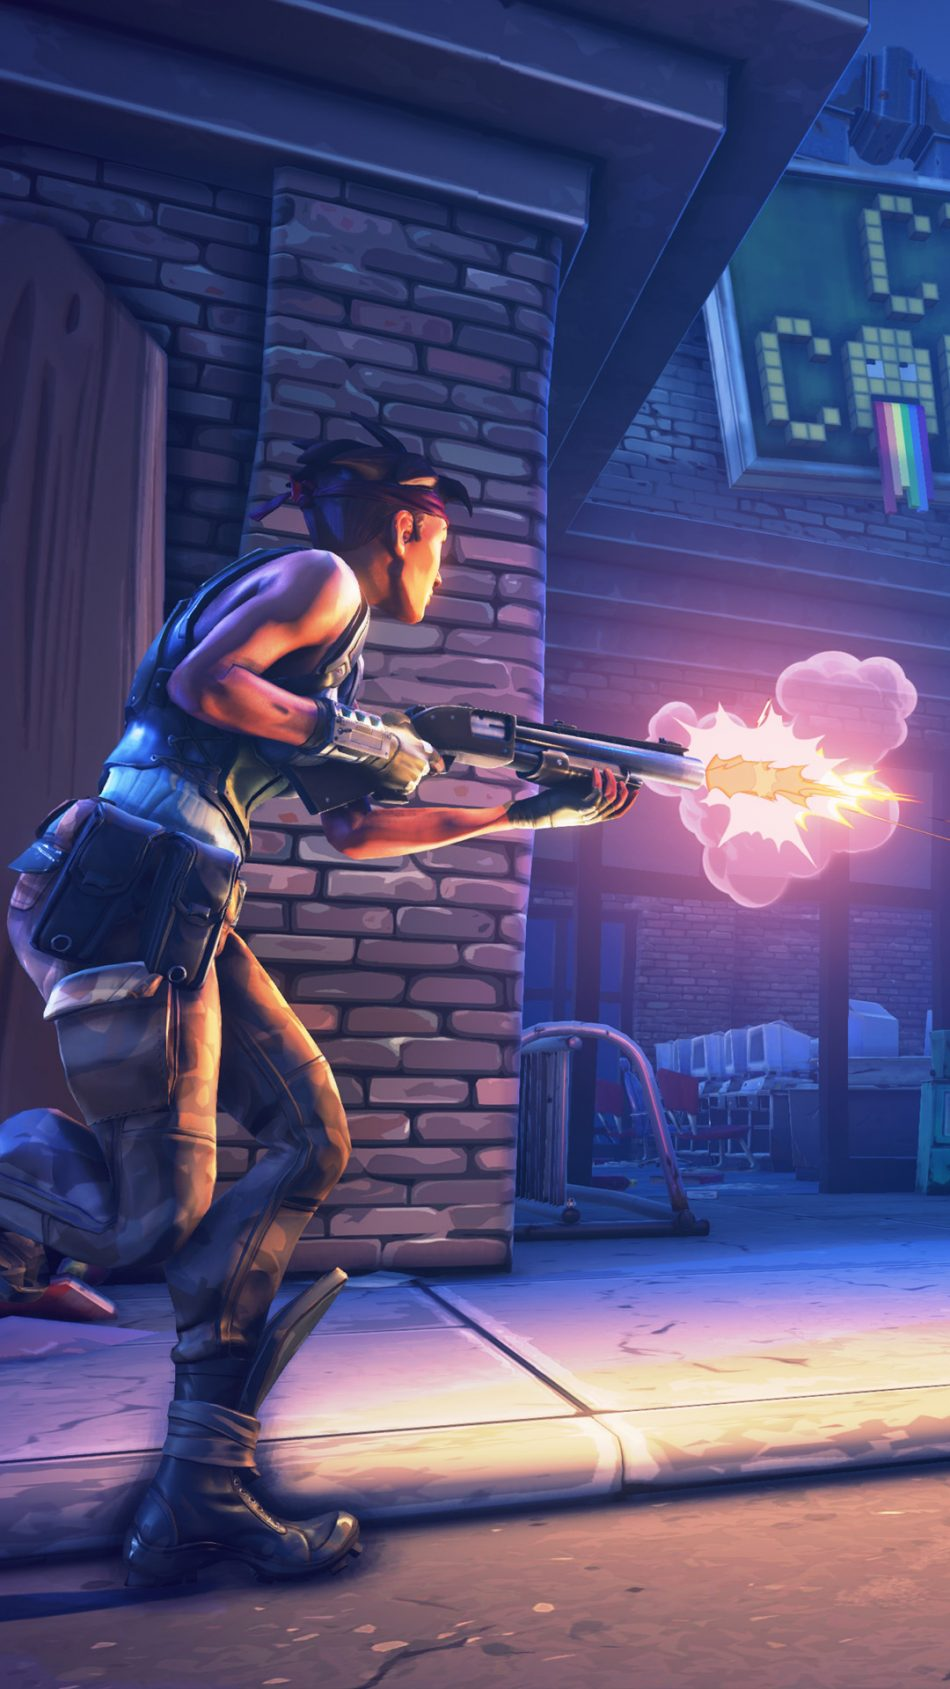 Download Fortnite Battle Royale Shooting Free Pure 4k Ultra Hd